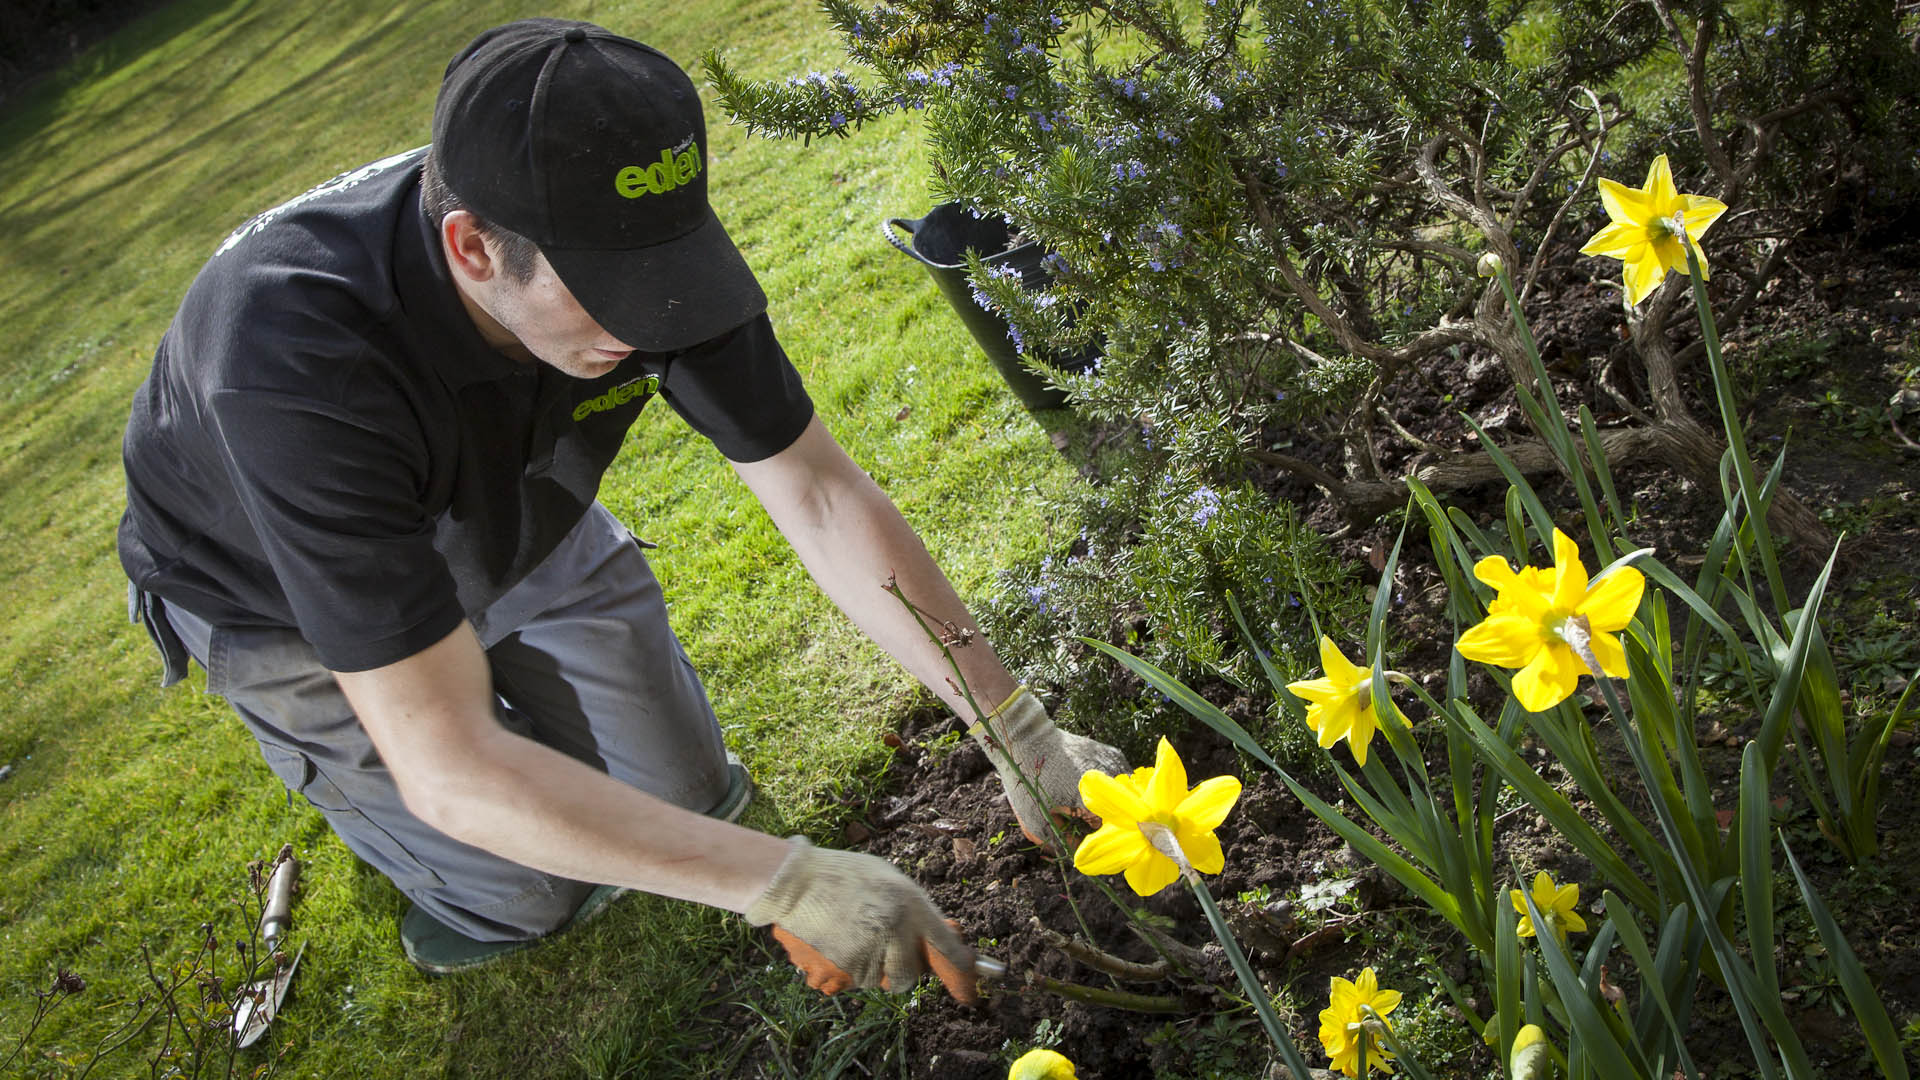 Eden homeslider 2 eden gardening services worthing for Gardening services